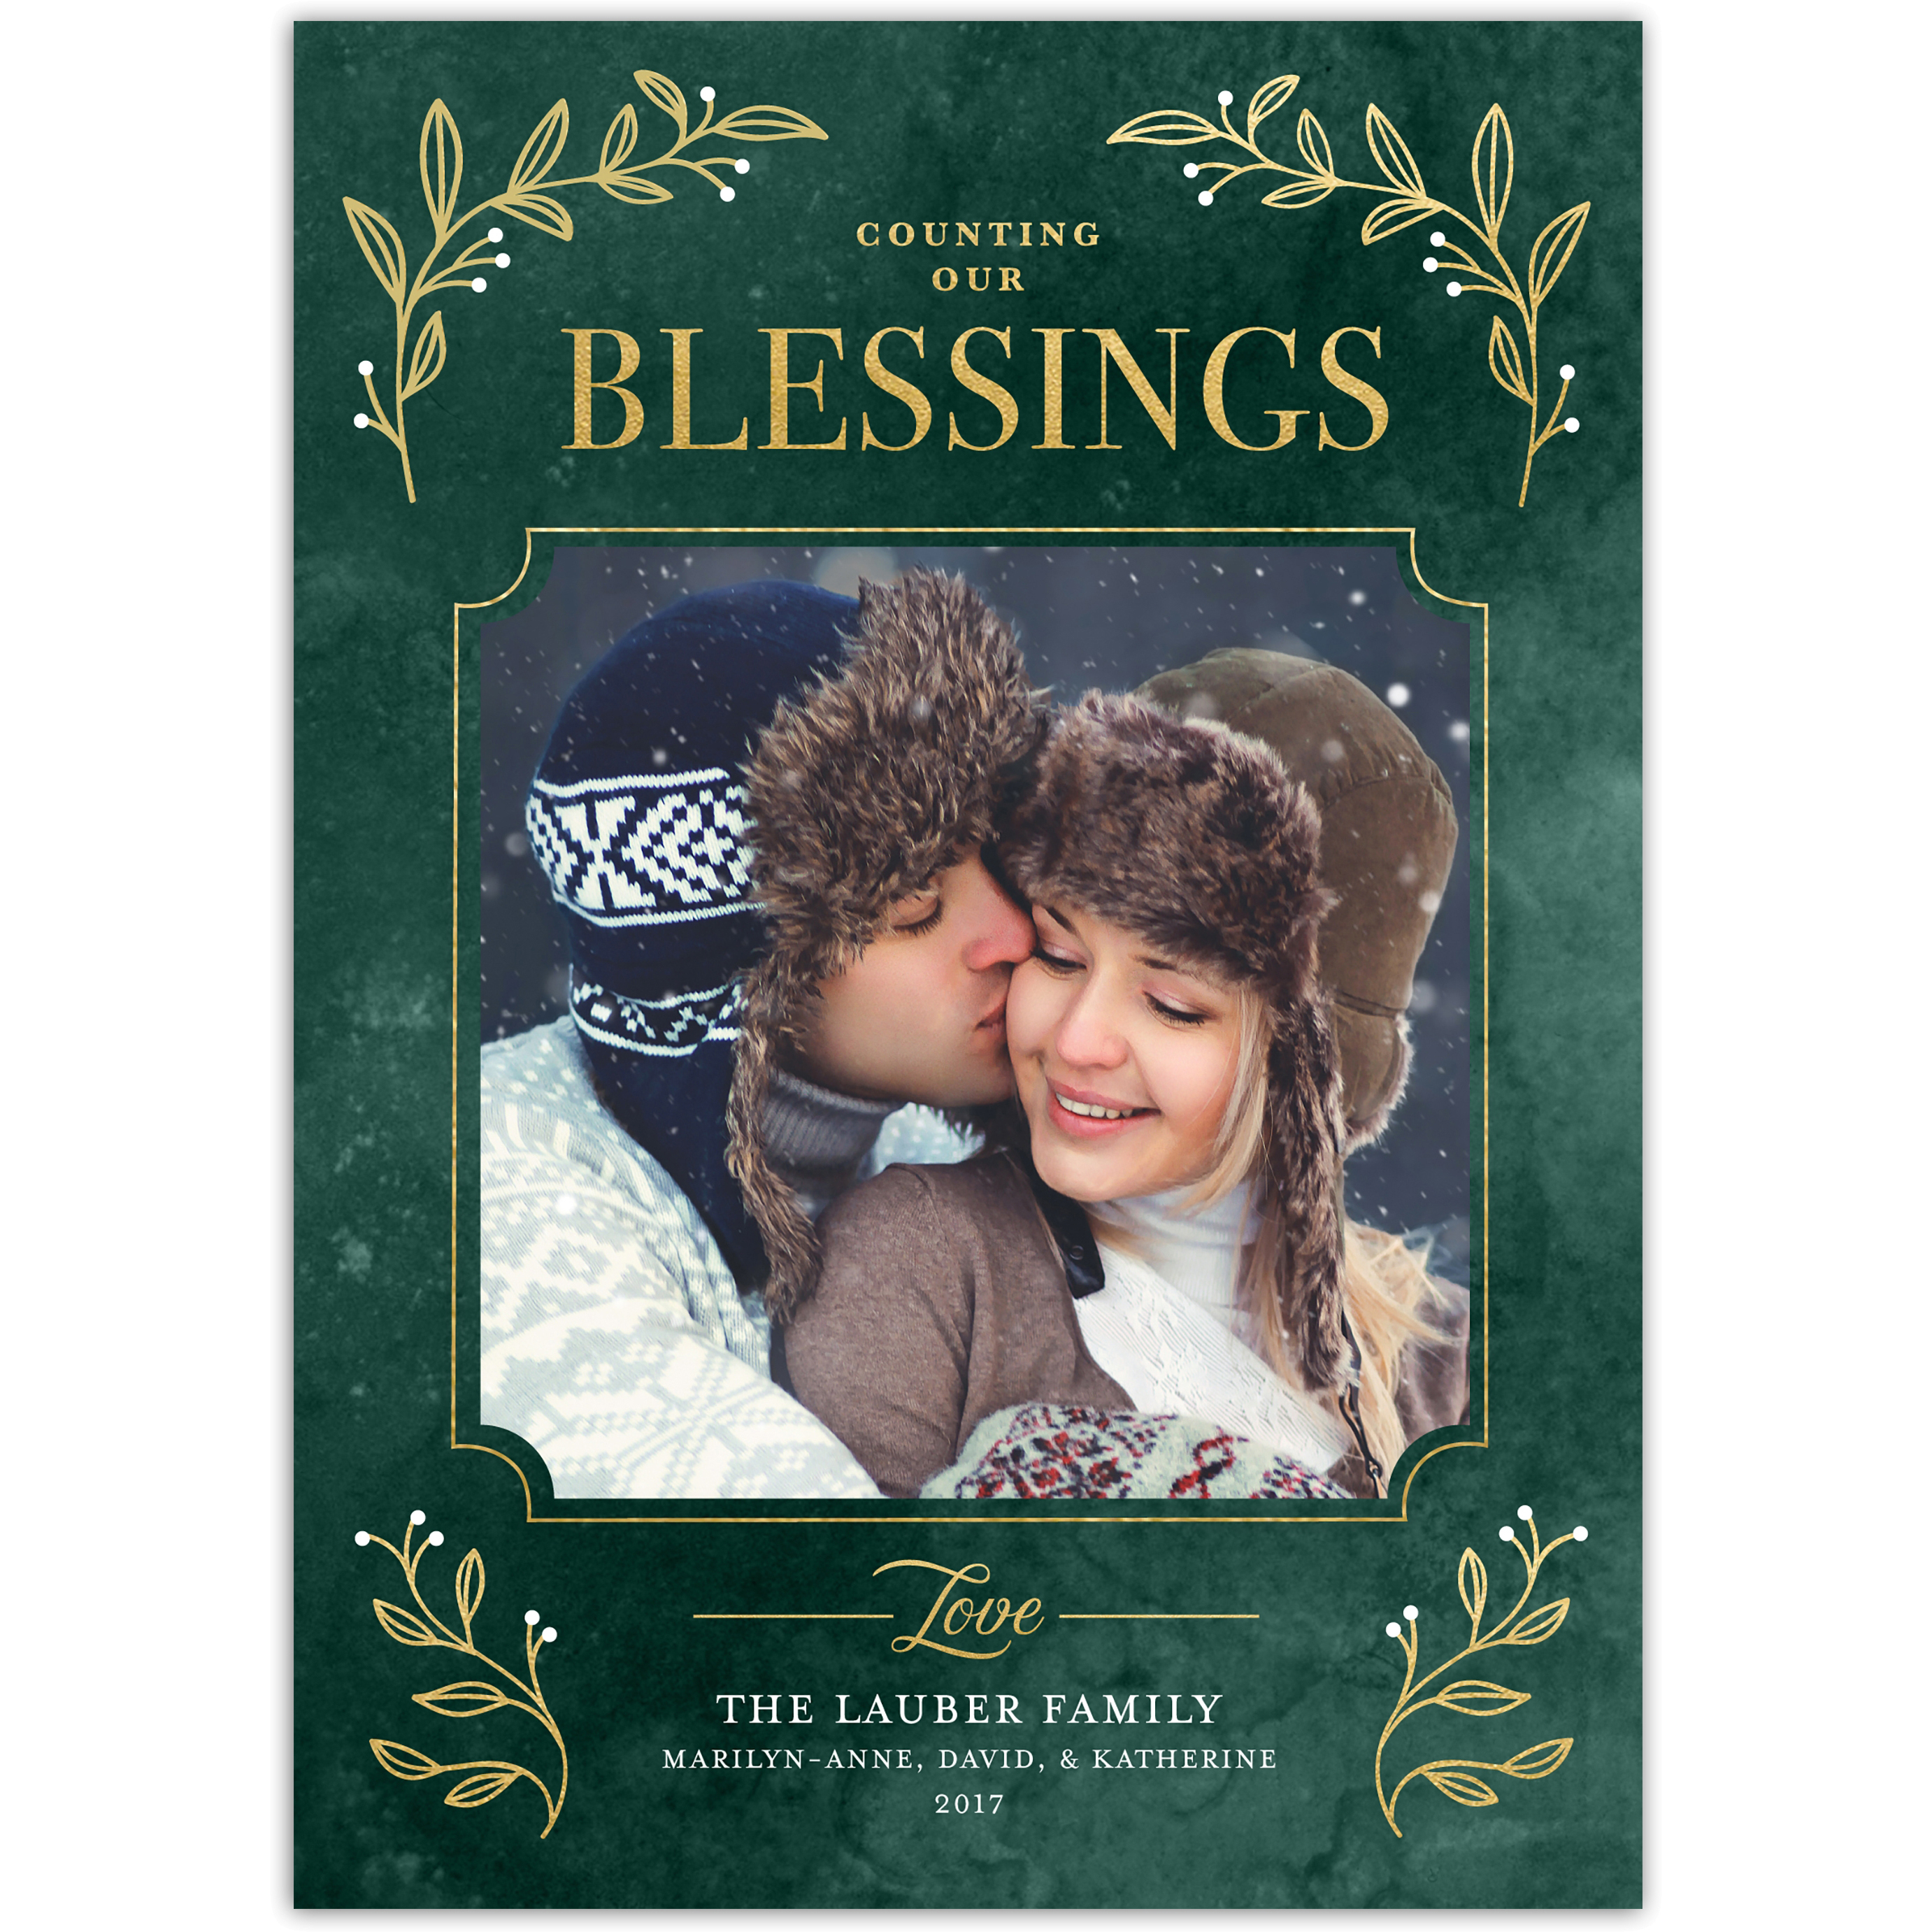 Counting Our Blessings - 5x7 Personalized Holiday Card